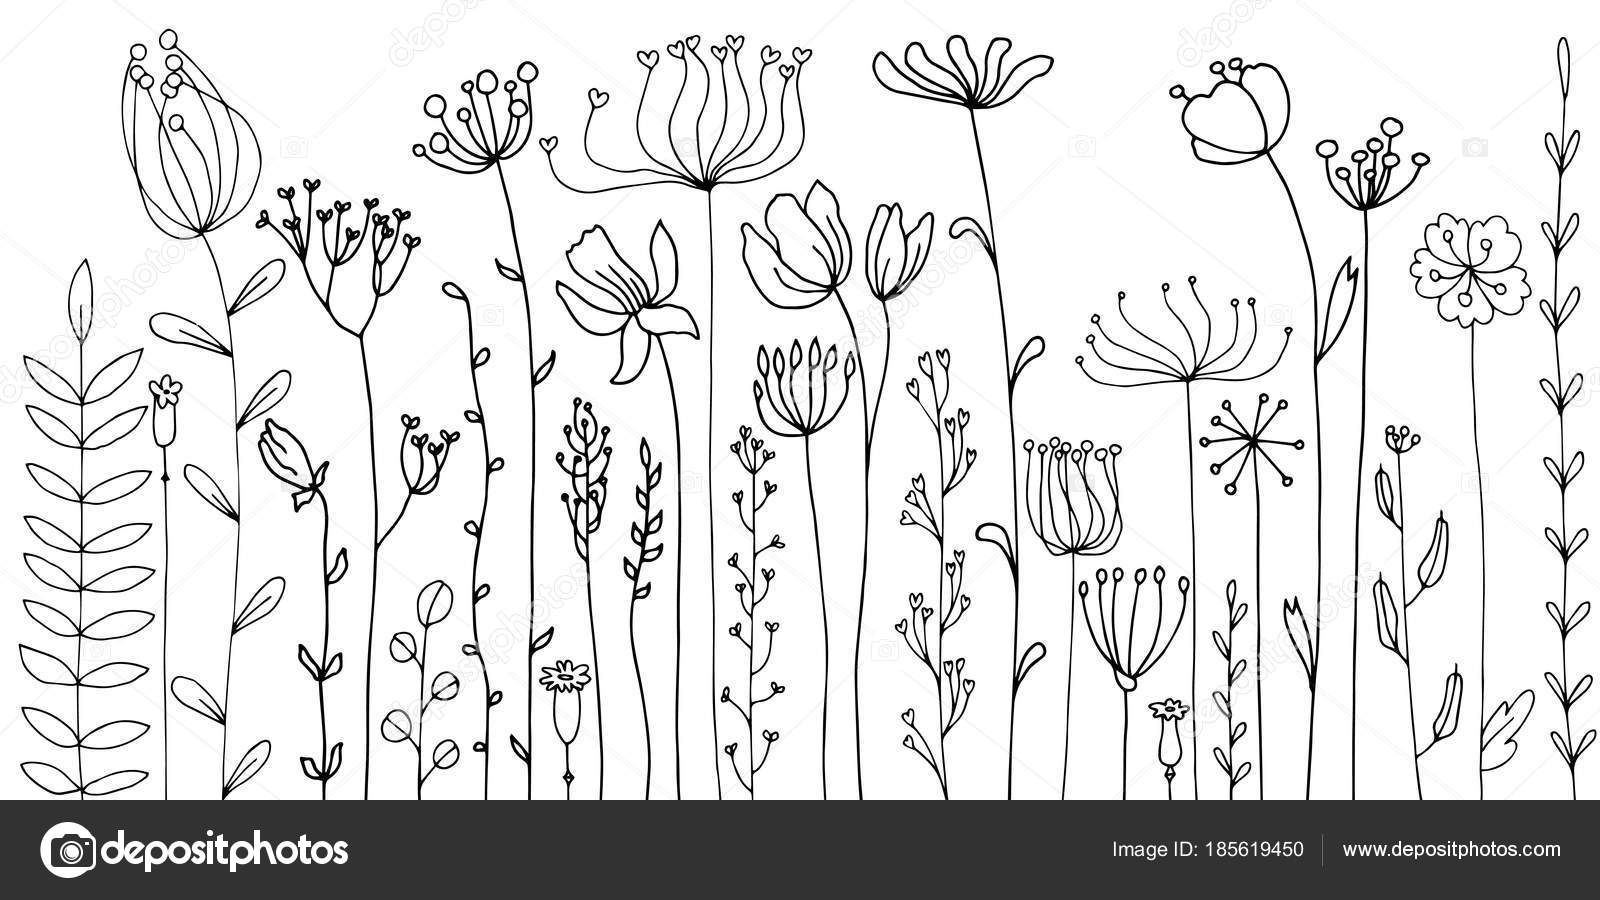 Background With Drawing Herbs And Flowers Stock Vector